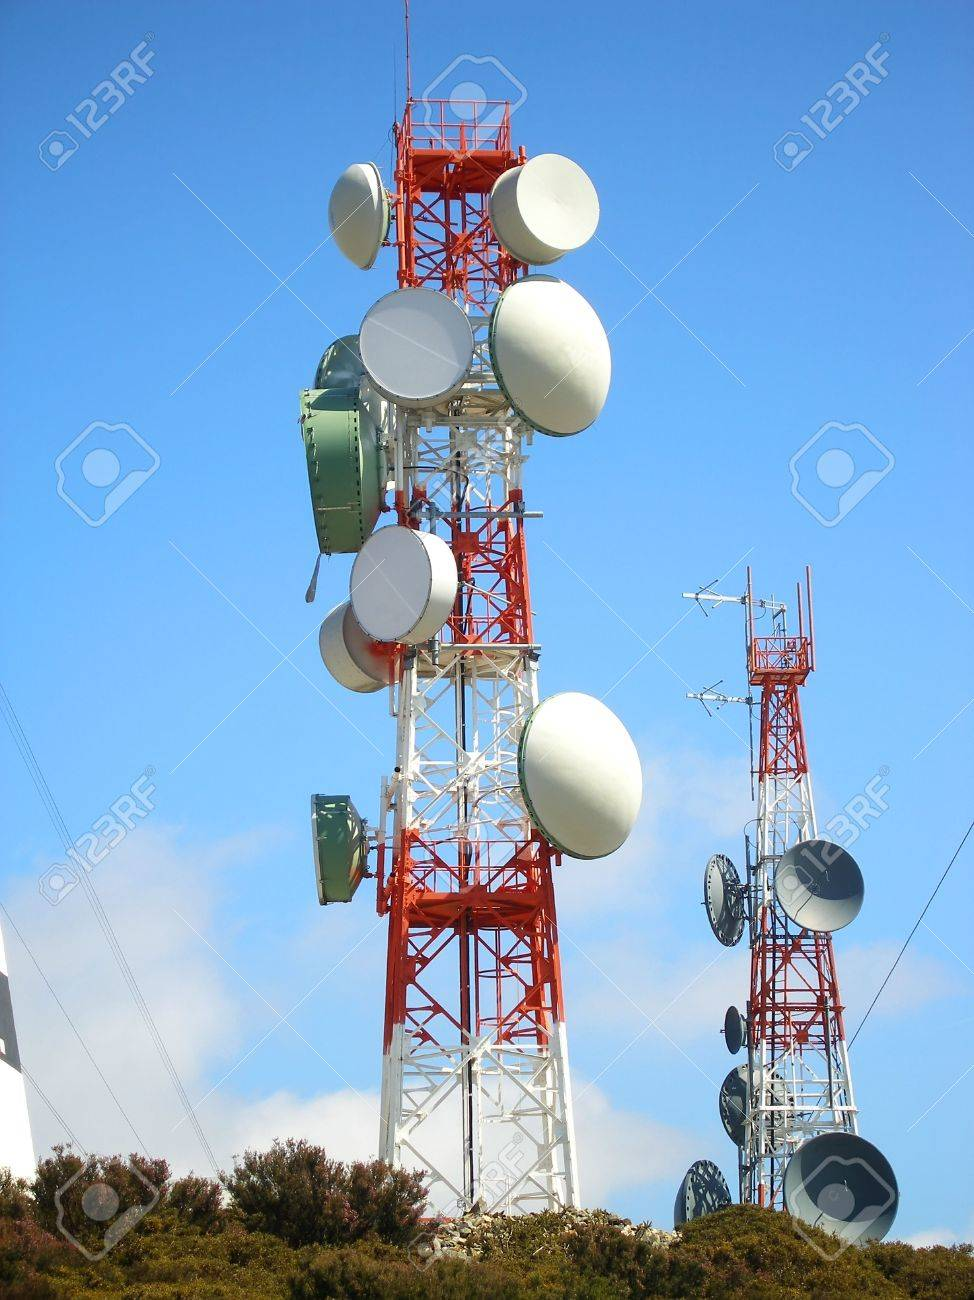 communication antena with an array of dishes Stock Photo - 6361731